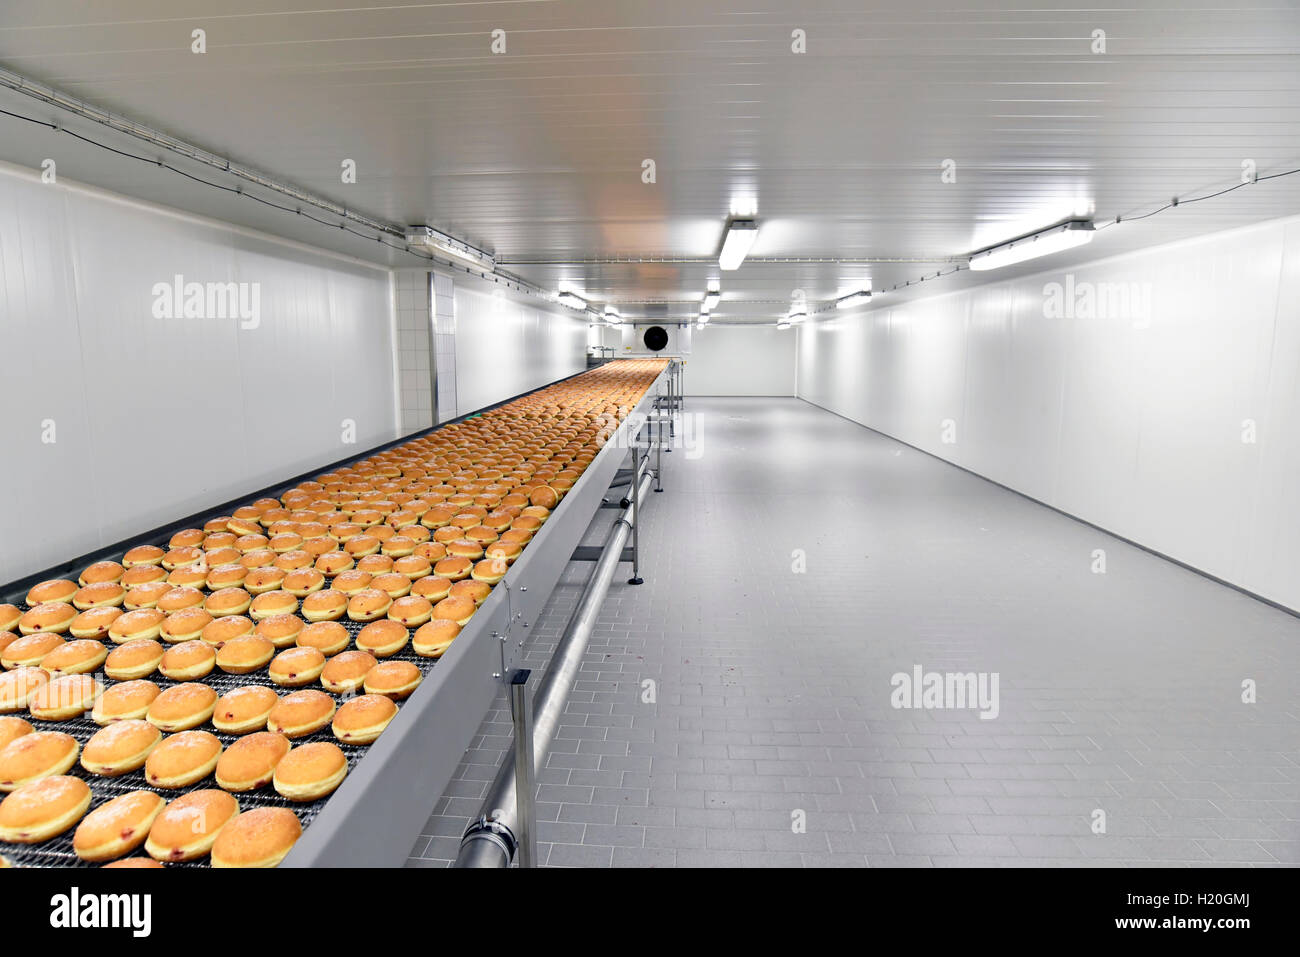 Production line in a baking factory with Berliners - Stock Image